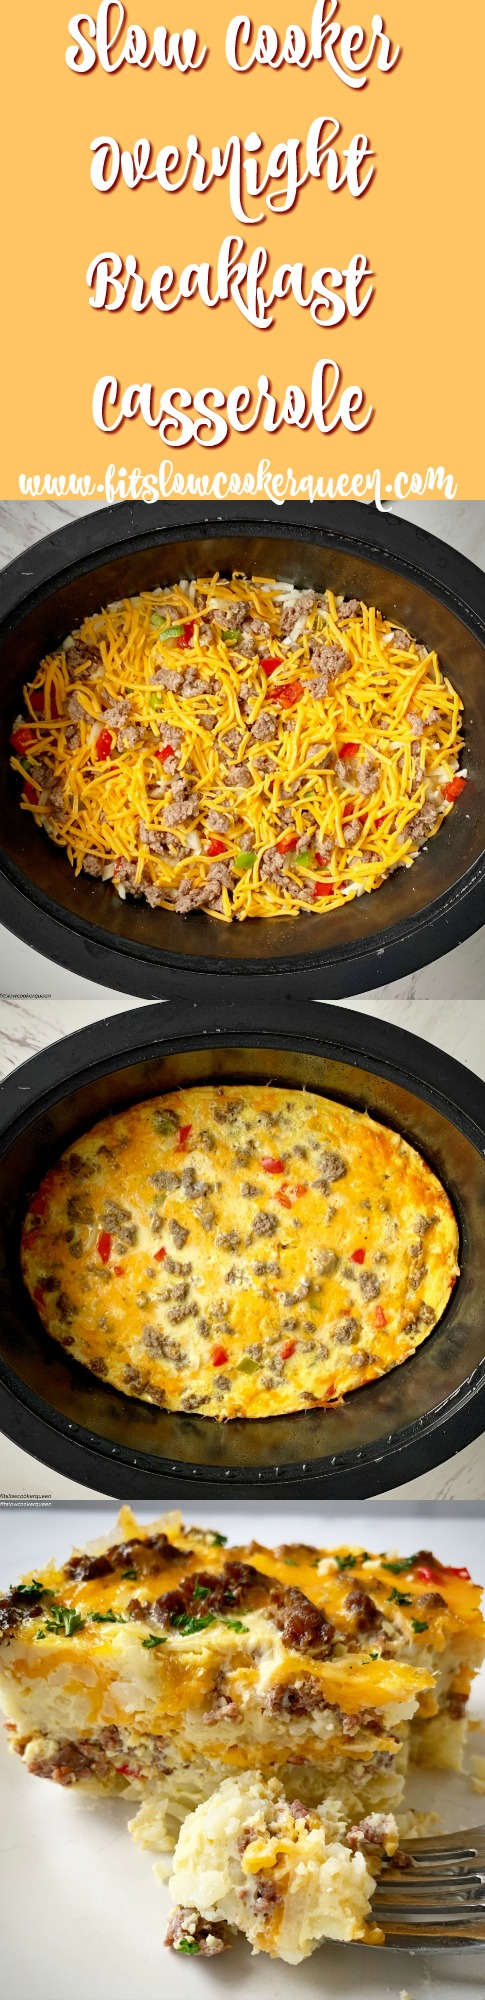 another pinterest pin for {VIDEO} Slow Cooker Overnight Breakfast Casserole